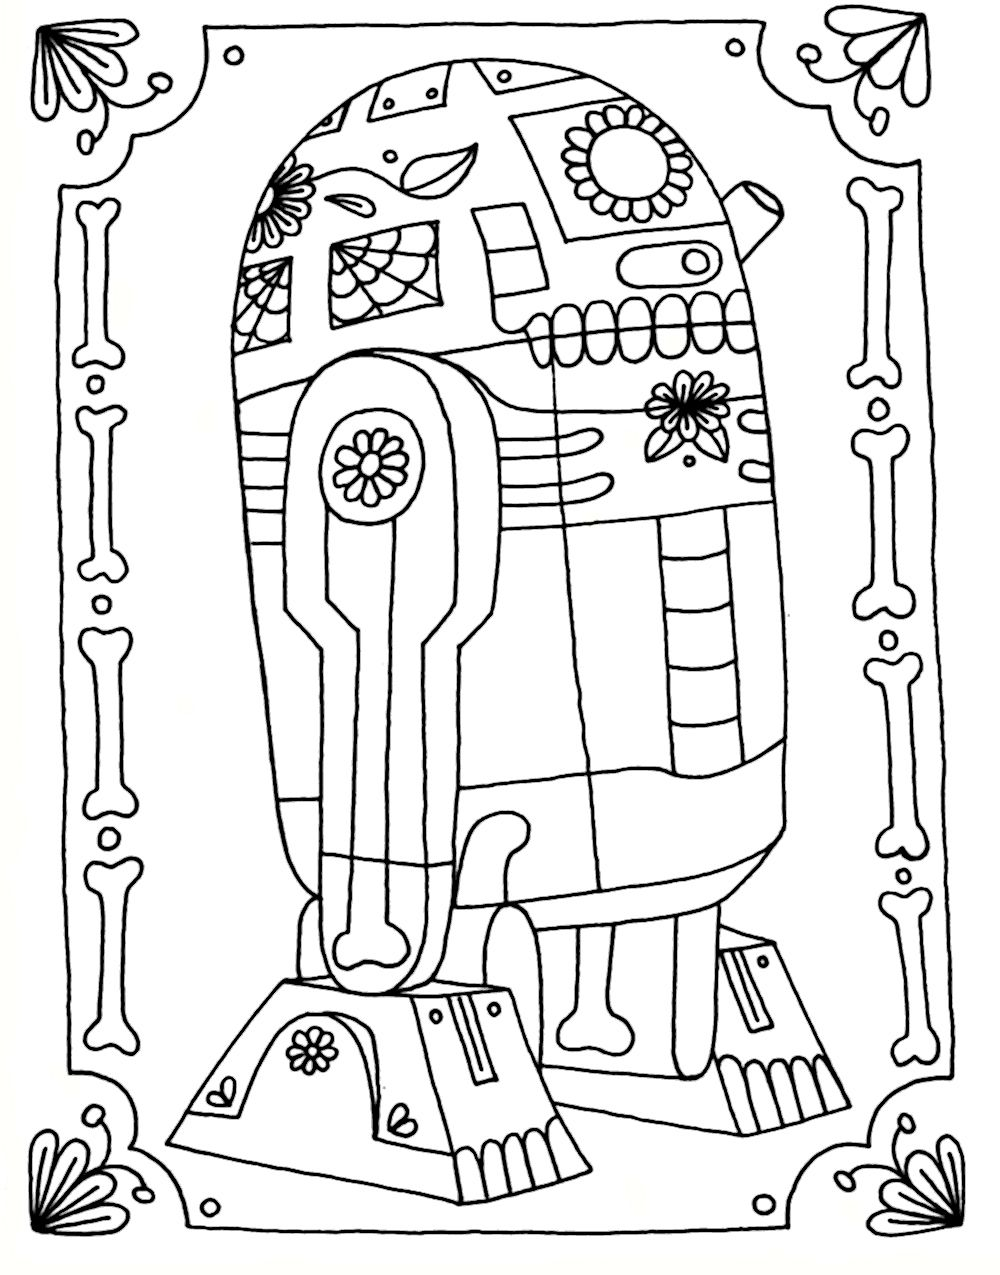 m and m coloring pages | Yucca Flats, N.M.: Wenchkin\'s Coloring ...